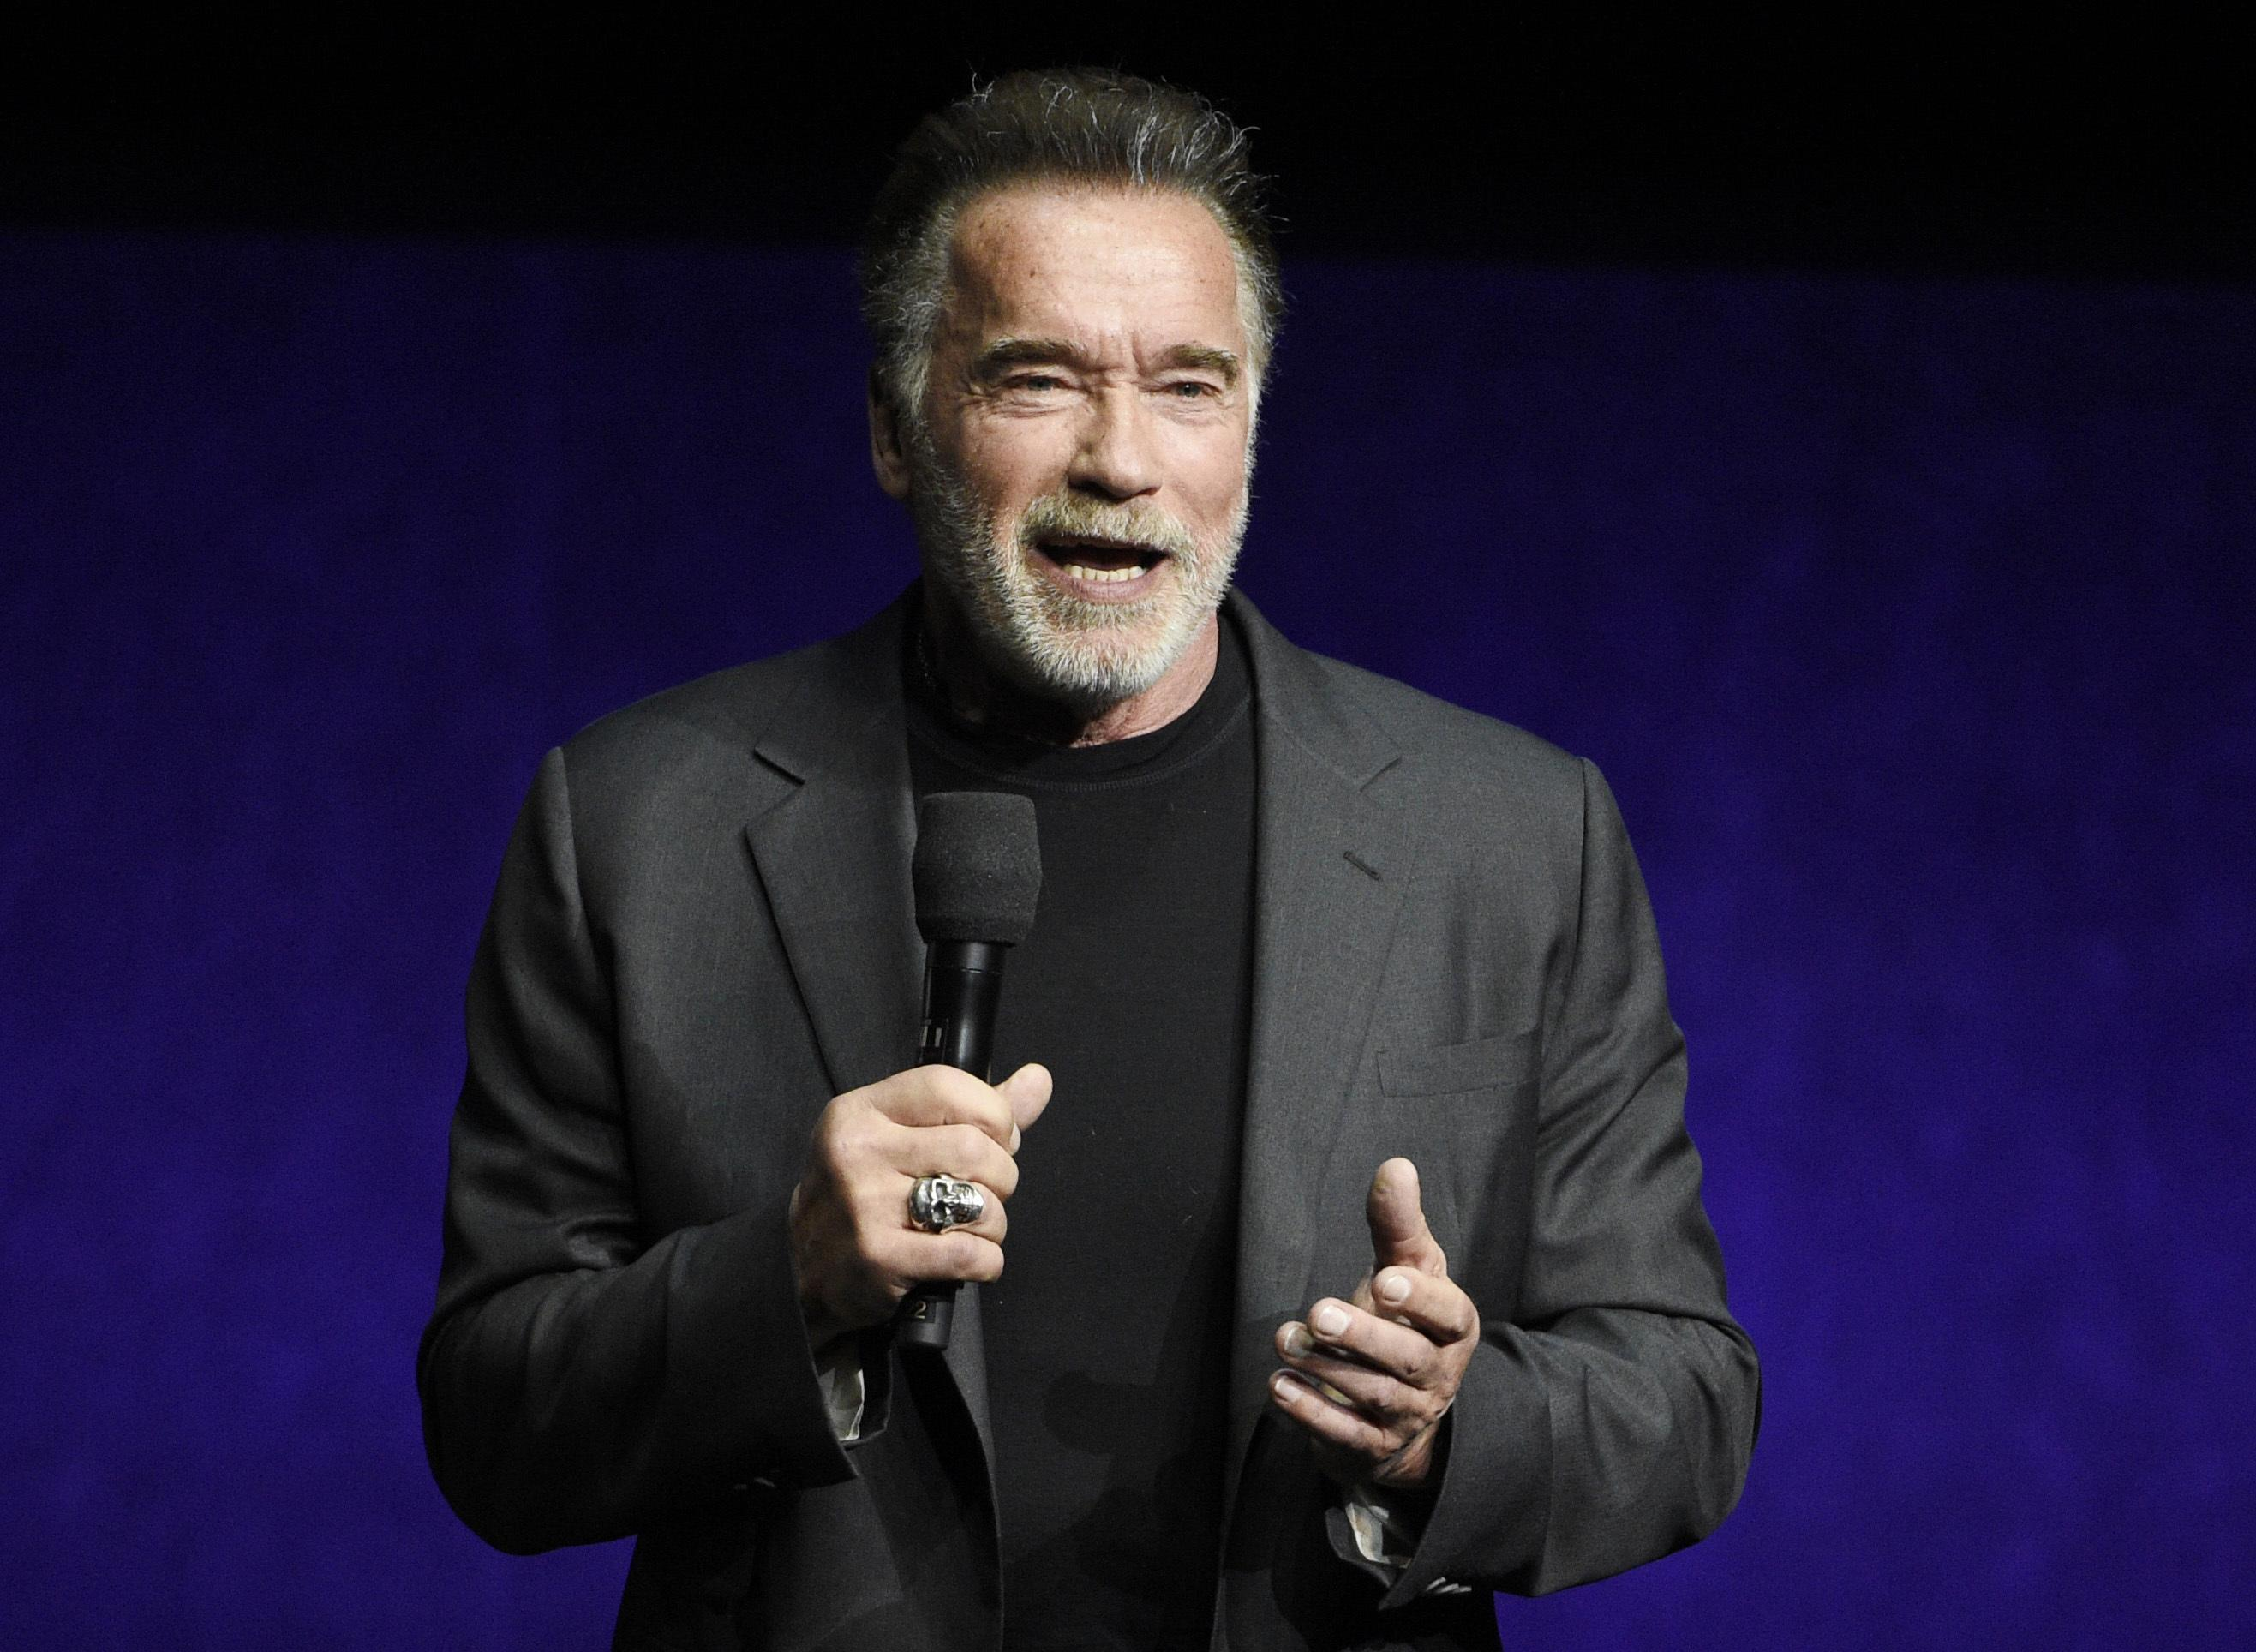 Arnold Schwarzenegger dropkicked from behind during South African sports event